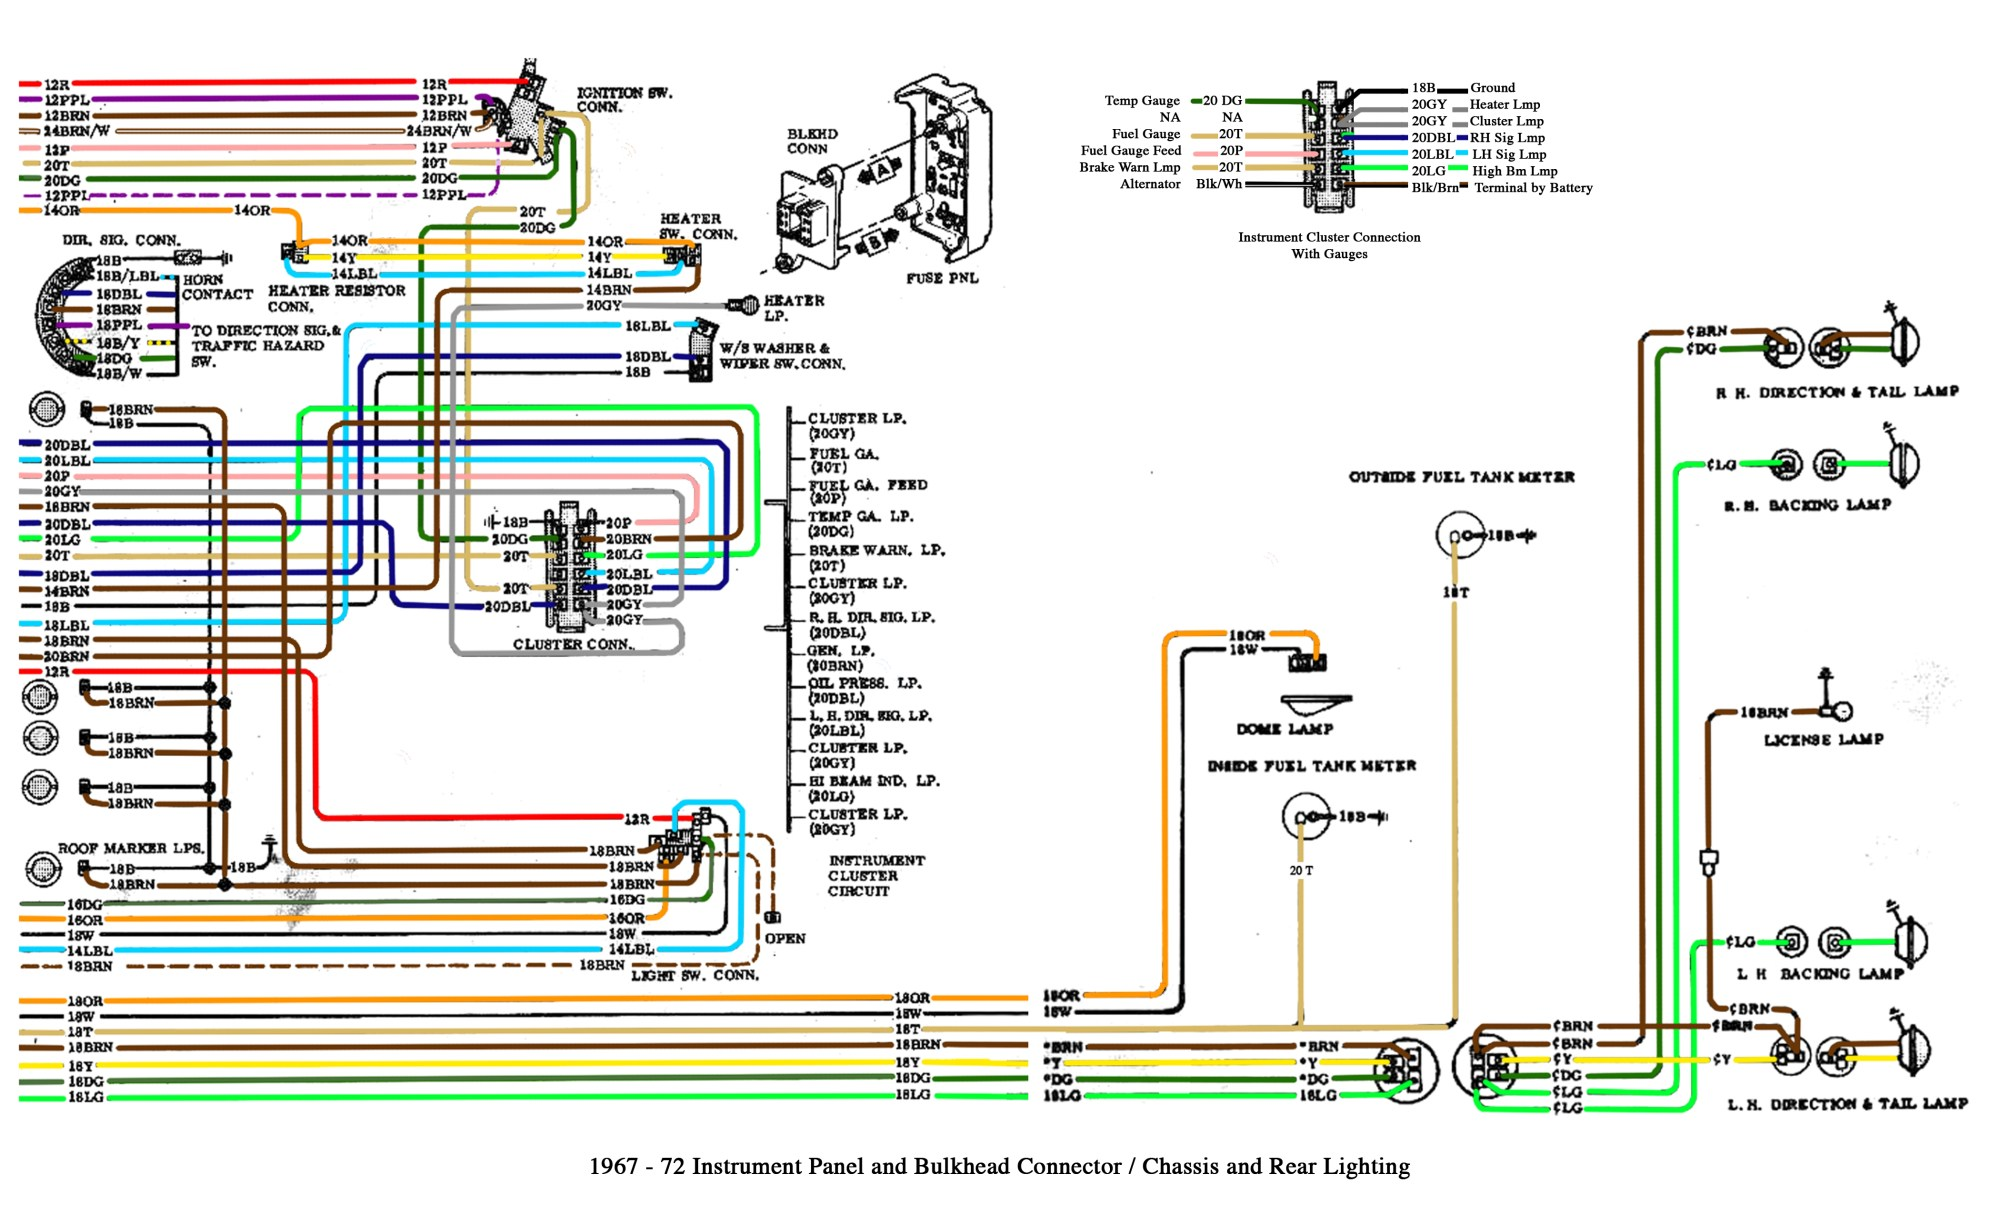 hight resolution of 1967 c10 wiring diagram wiring diagram schematics rh ksefanzone com 1965 chevy c10 wiring harnesses 1985